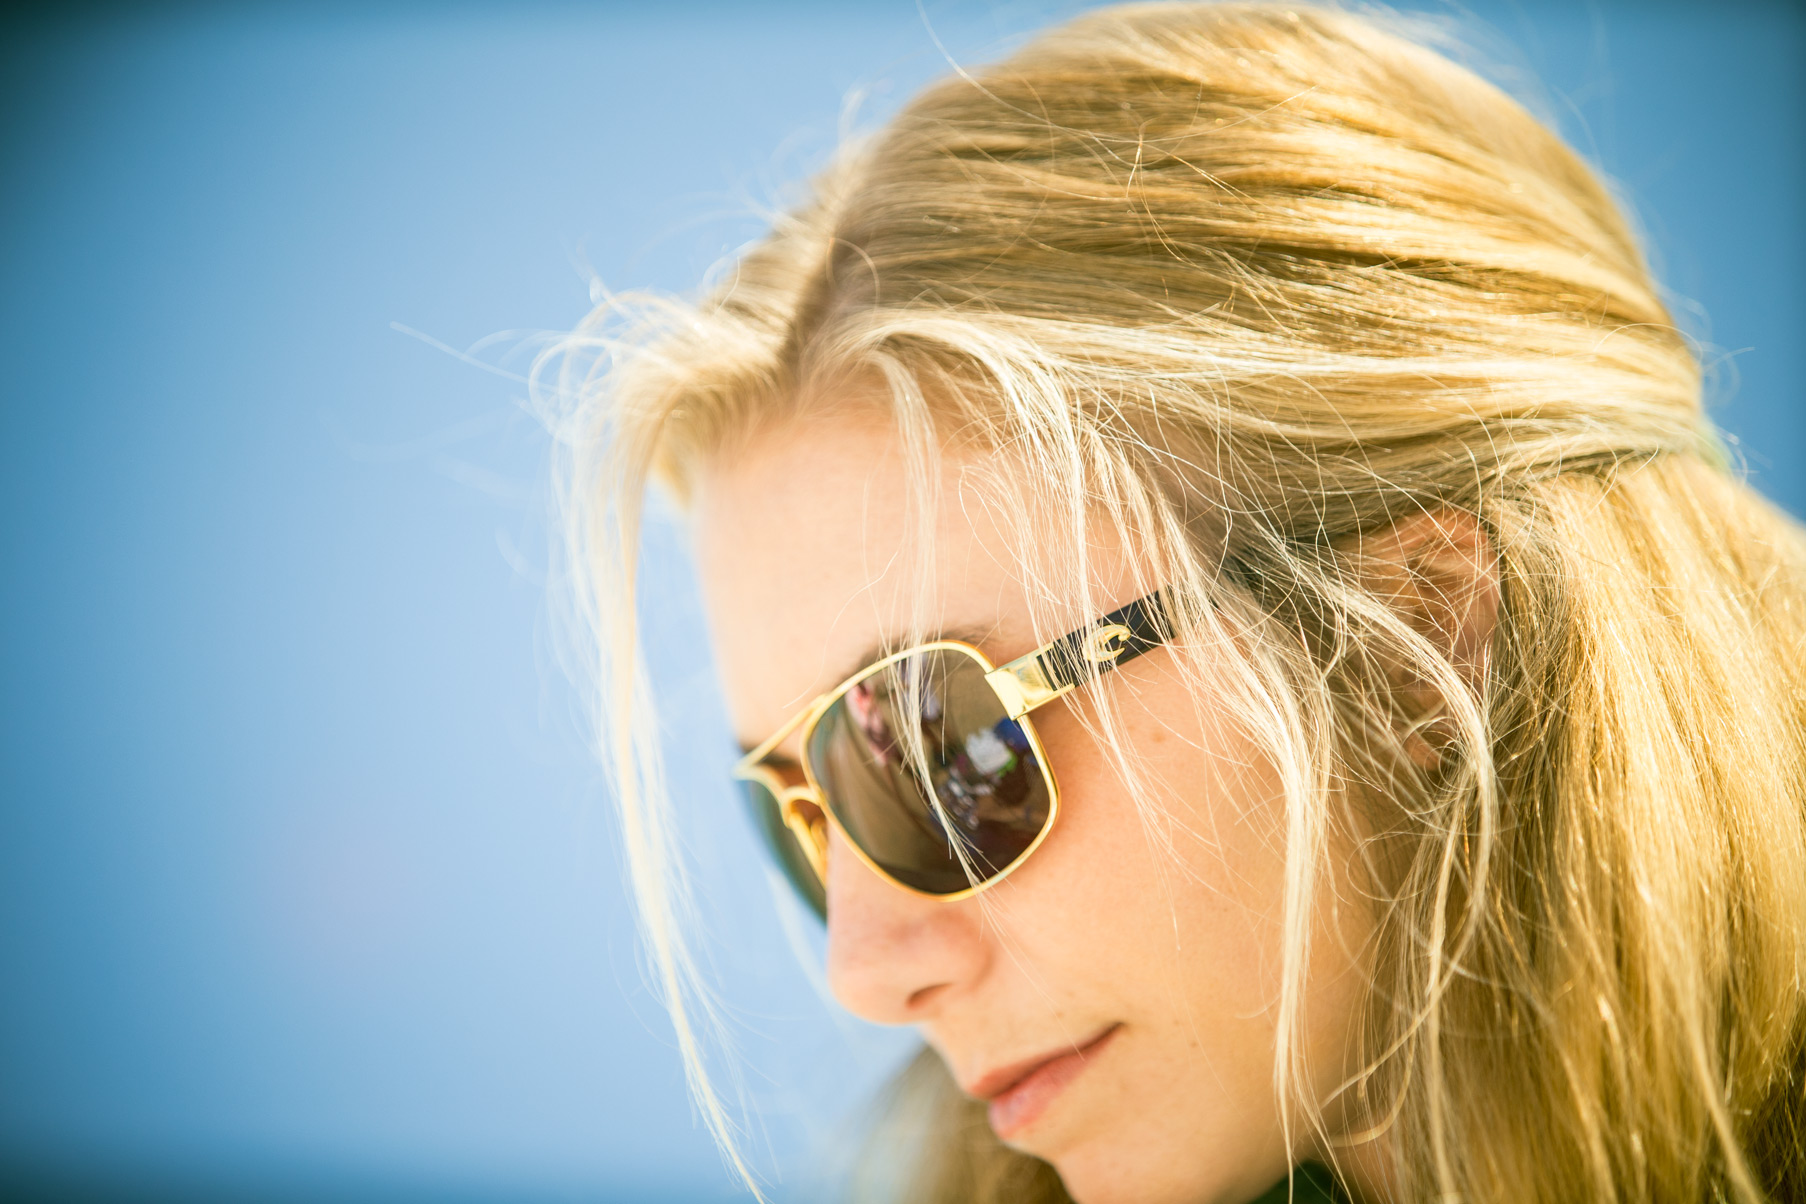 costa-sunglasses-photo-shoot-mexico-4403